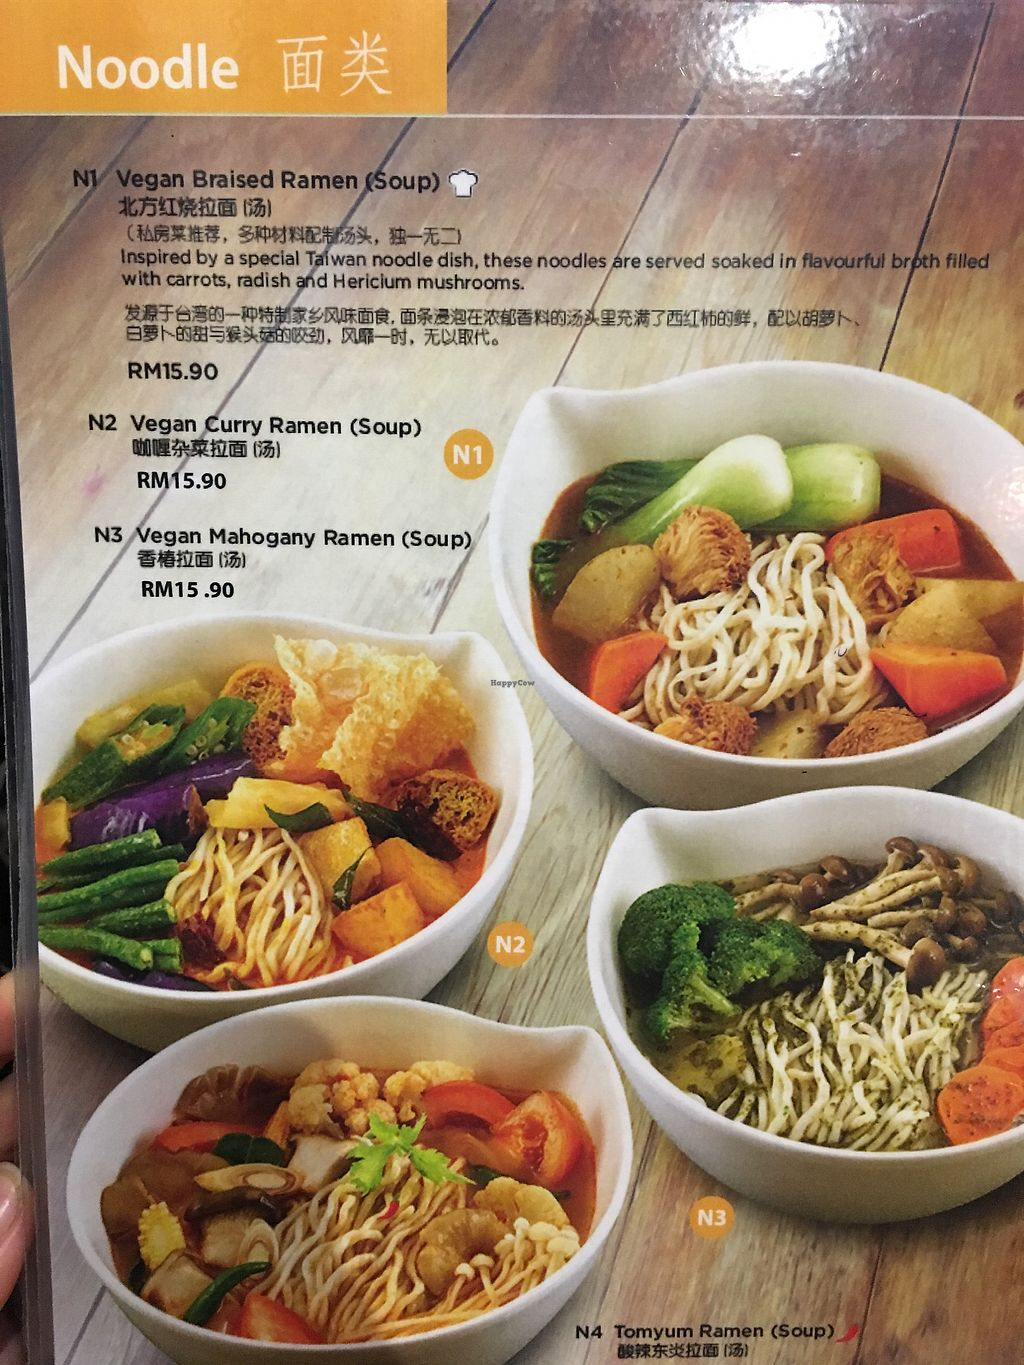 """Photo of V Delight  by <a href=""""/members/profile/Spaghetti_monster"""">Spaghetti_monster</a> <br/>Vegan noodle dishes  <br/> October 9, 2017  - <a href='/contact/abuse/image/66224/313564'>Report</a>"""